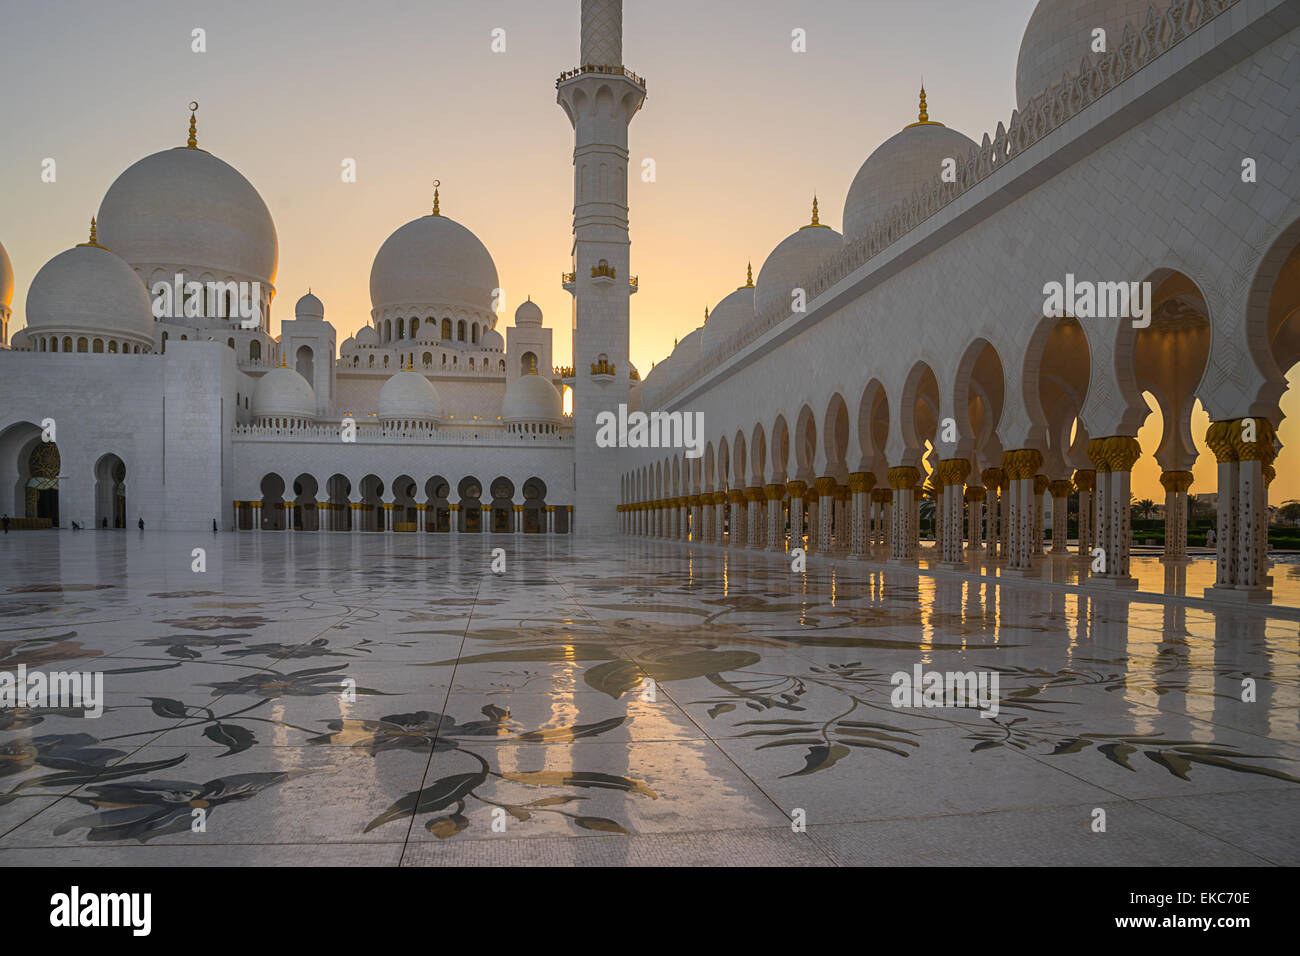 Sheikh Zayed Grand Mosque in Abu Dhabi - Stock Image